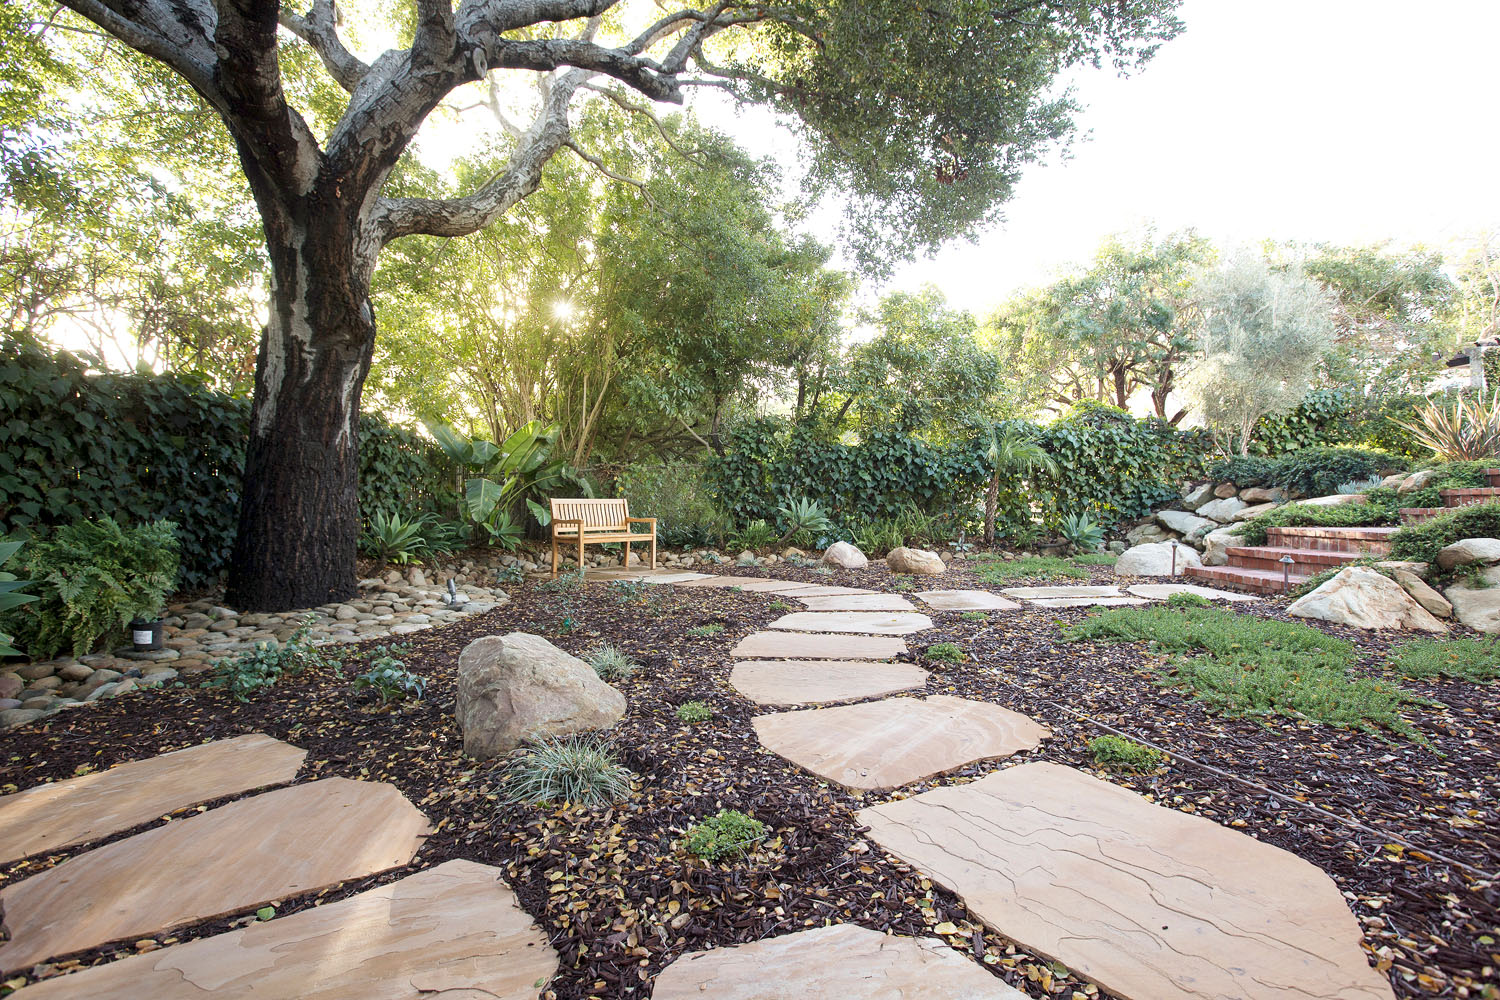 Stone Paths and Gardens